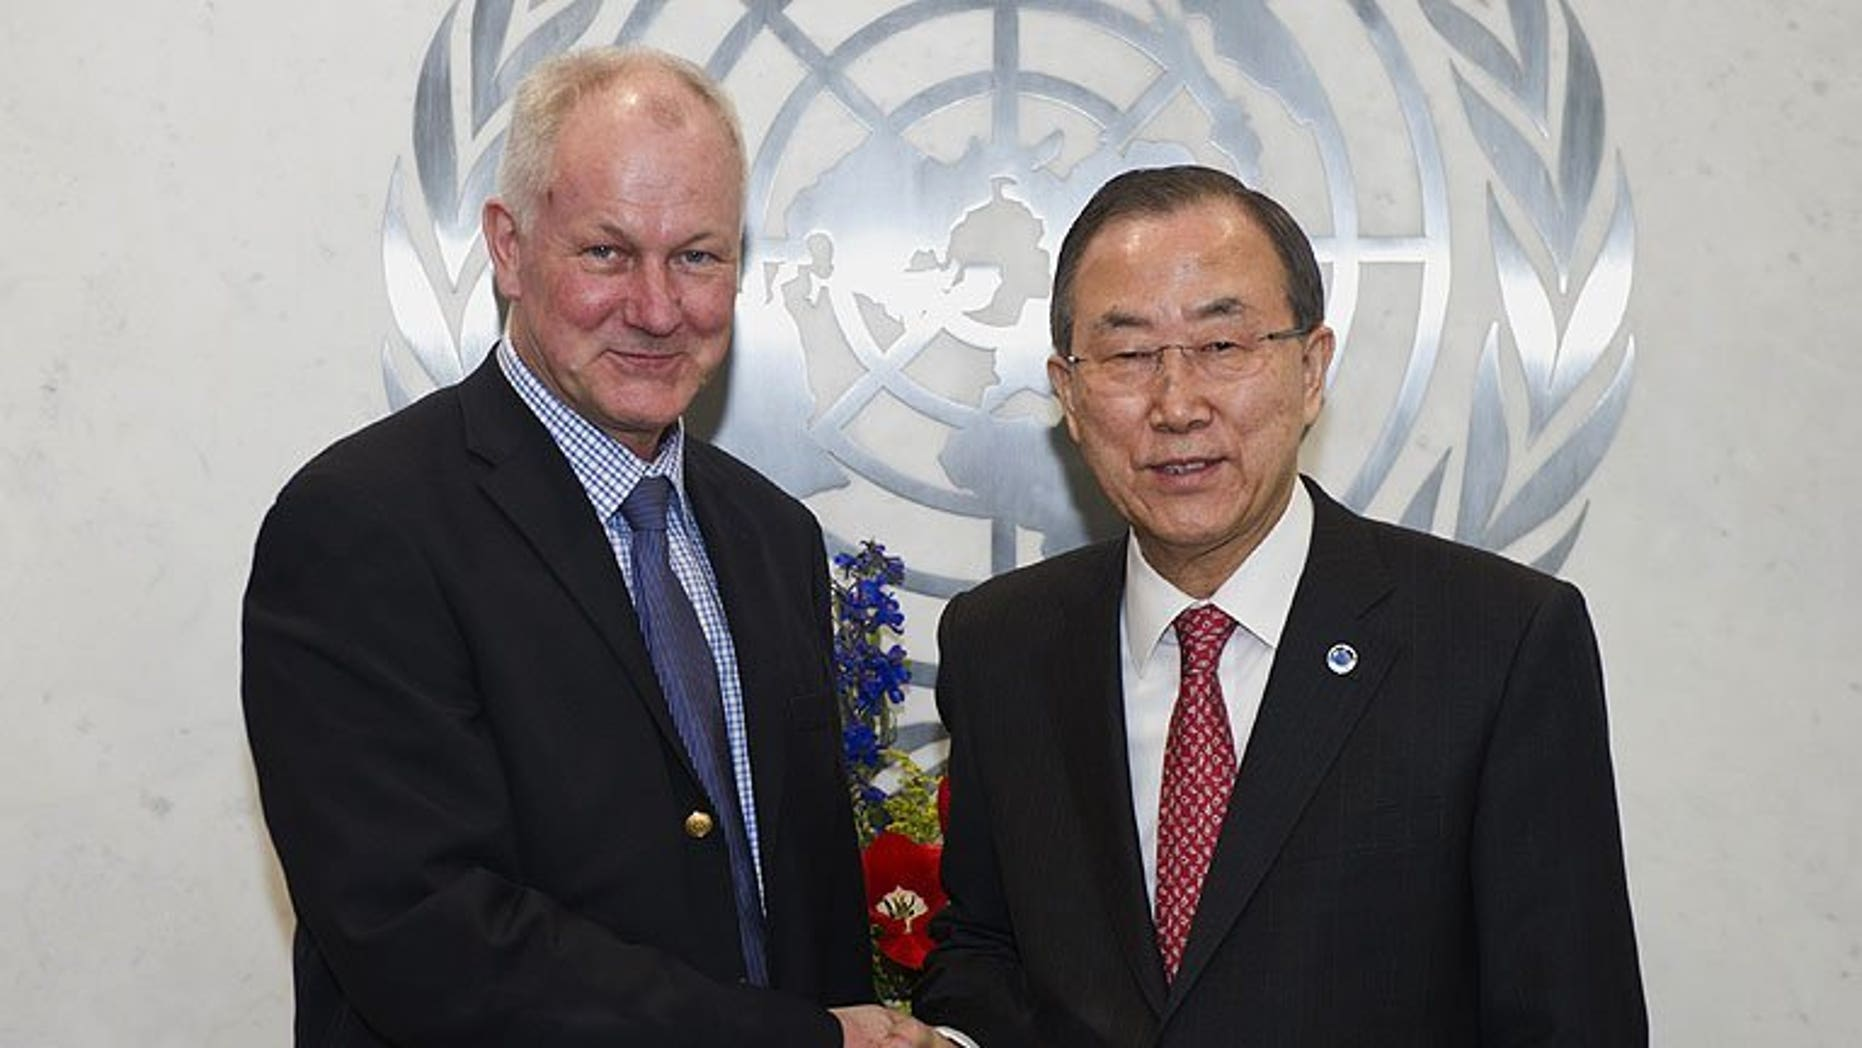 United Nations Secretary General Ban Ki-Moon (right) shakes hands with Swedish scientist Ake Sellstrom -- the head of the UN chemical weapons investigation team -- before their meeting at the UN headquarters in New York, on April 29, 2013. UN inspectors Sellstrom and Angela Kane -- tasked with examining claims that chemical weapons were used in Syria's civil war -- have arrived in Damascus.